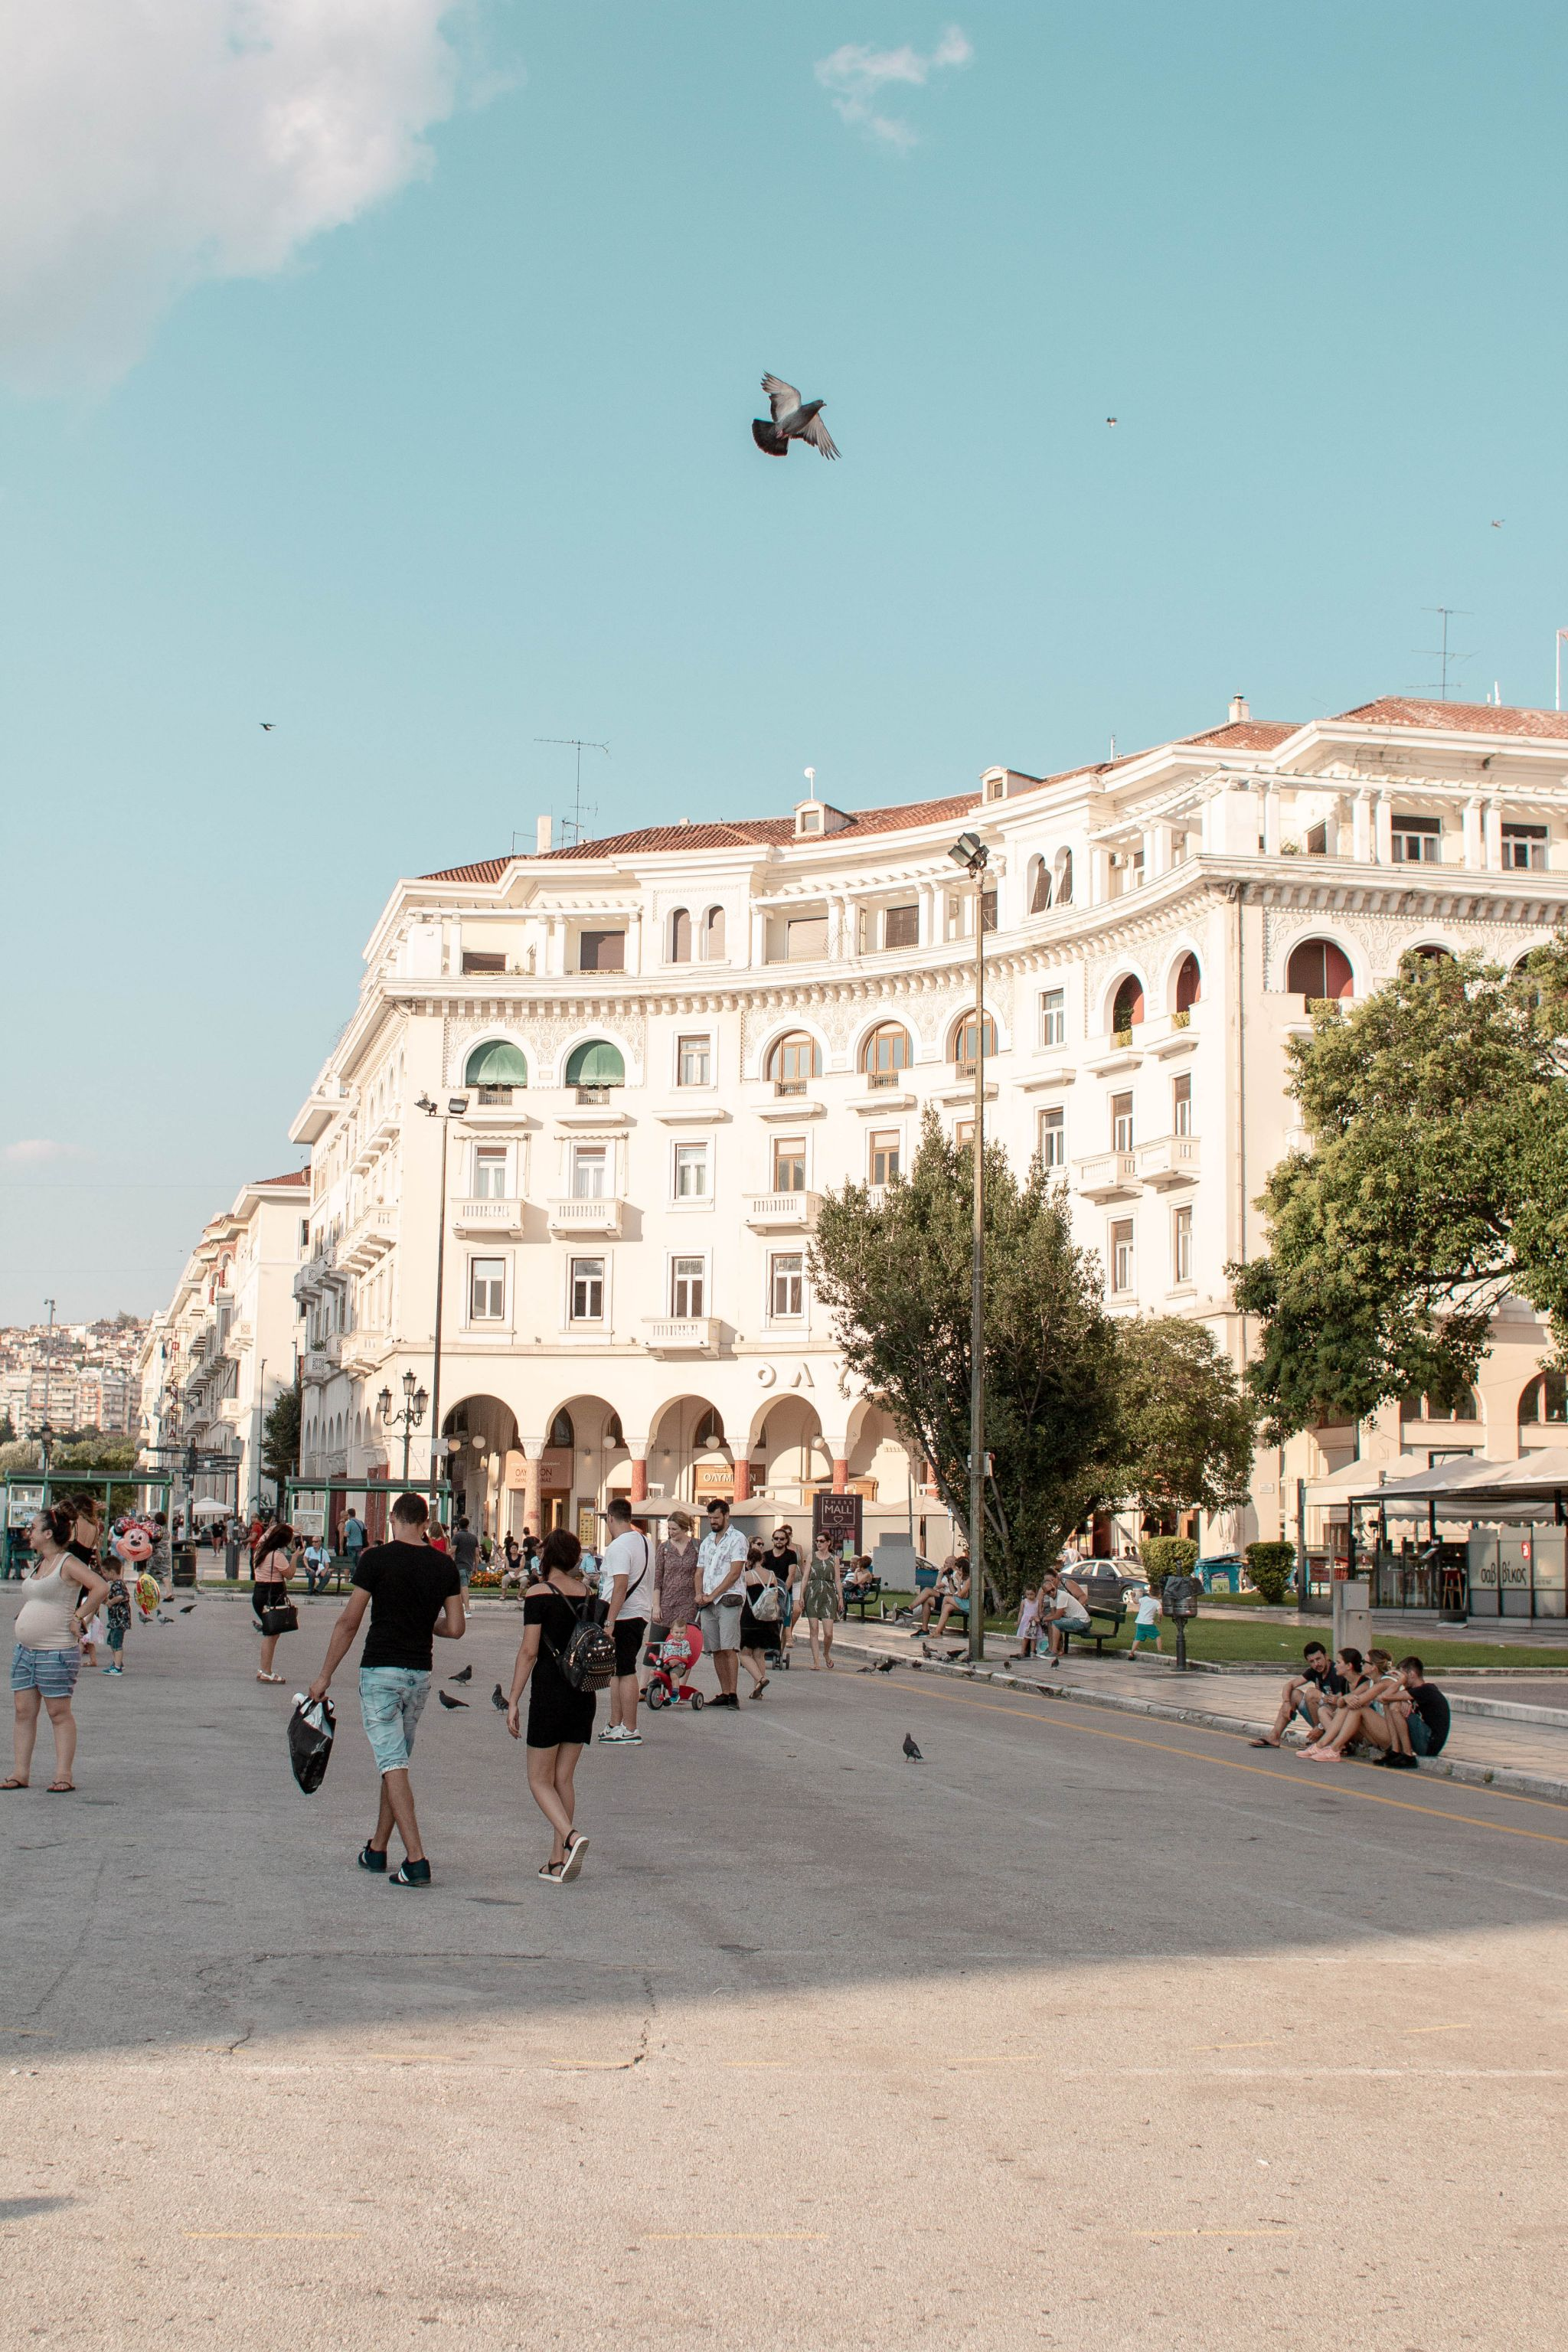 Aristotelous hannah layford travel photography tourist board discover greece thessaloniki Aristotelous square